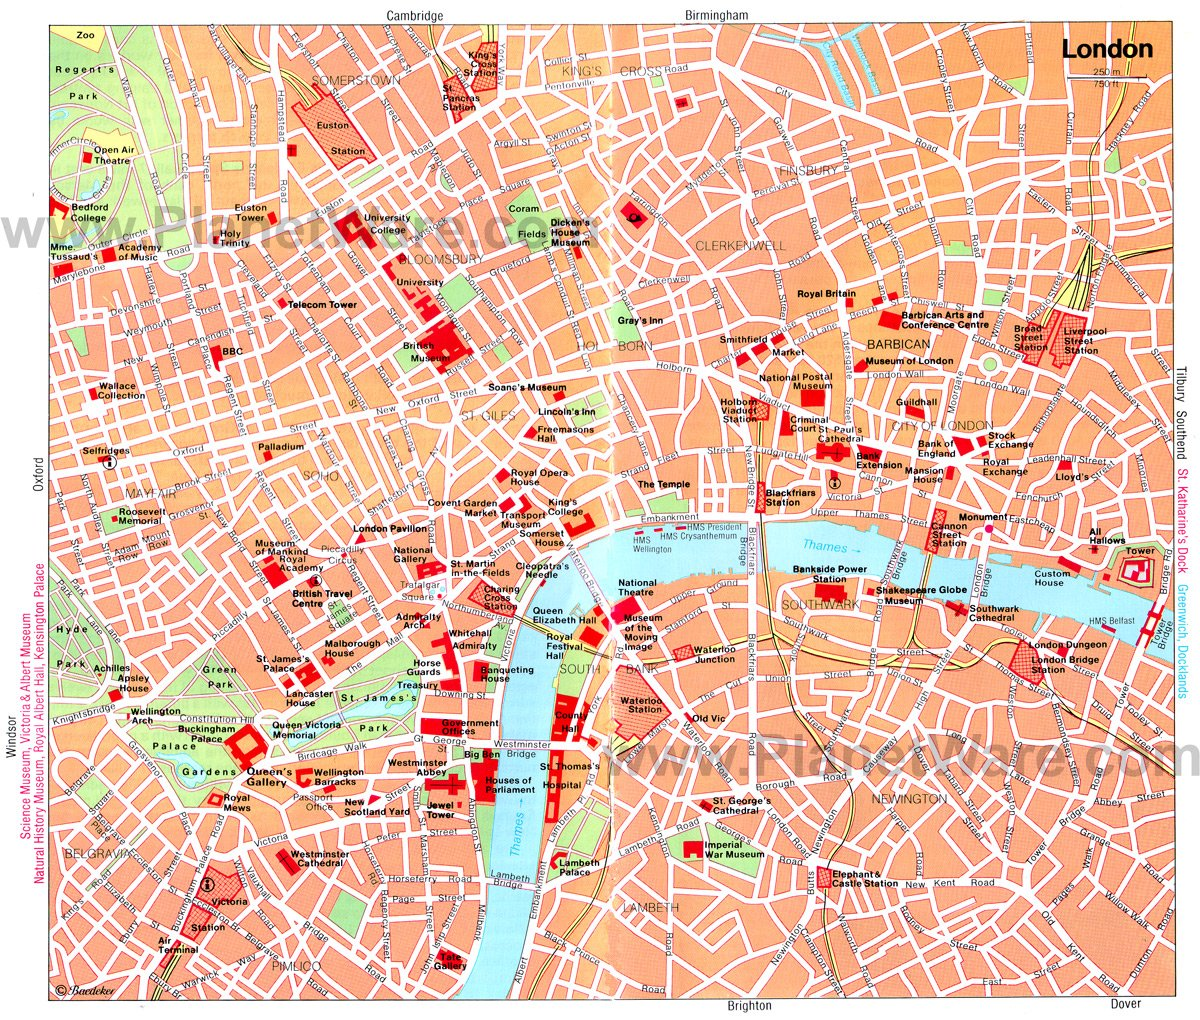 17 TopRated Tourist Attractions in London – Map Of London Tourist Sites